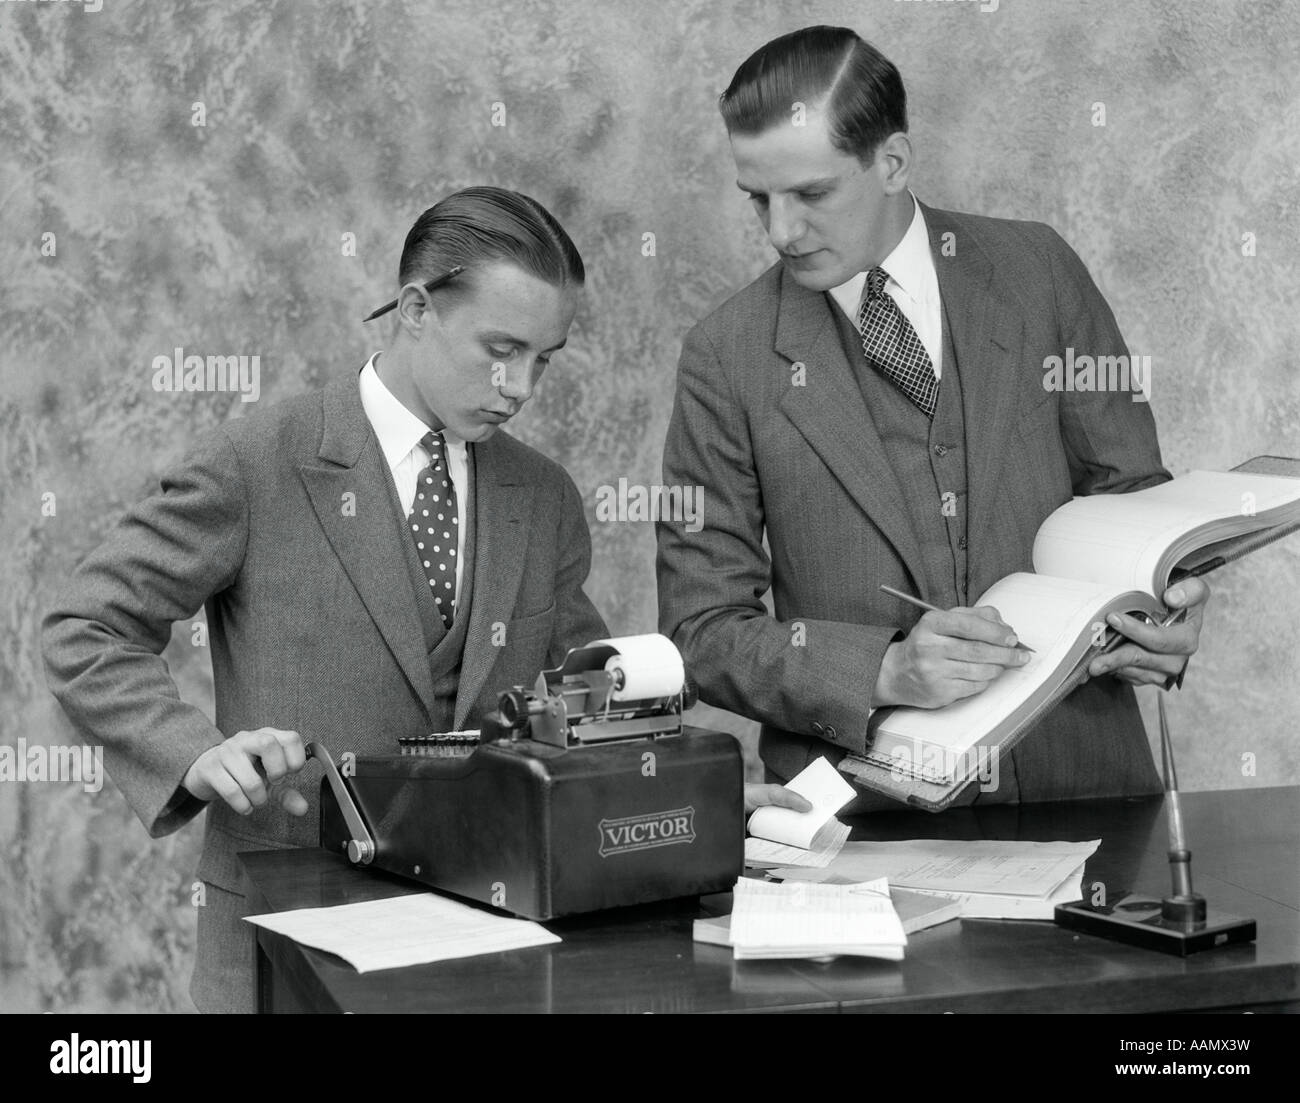 1930s Clerk And Young Assistant In Office Using Ledger